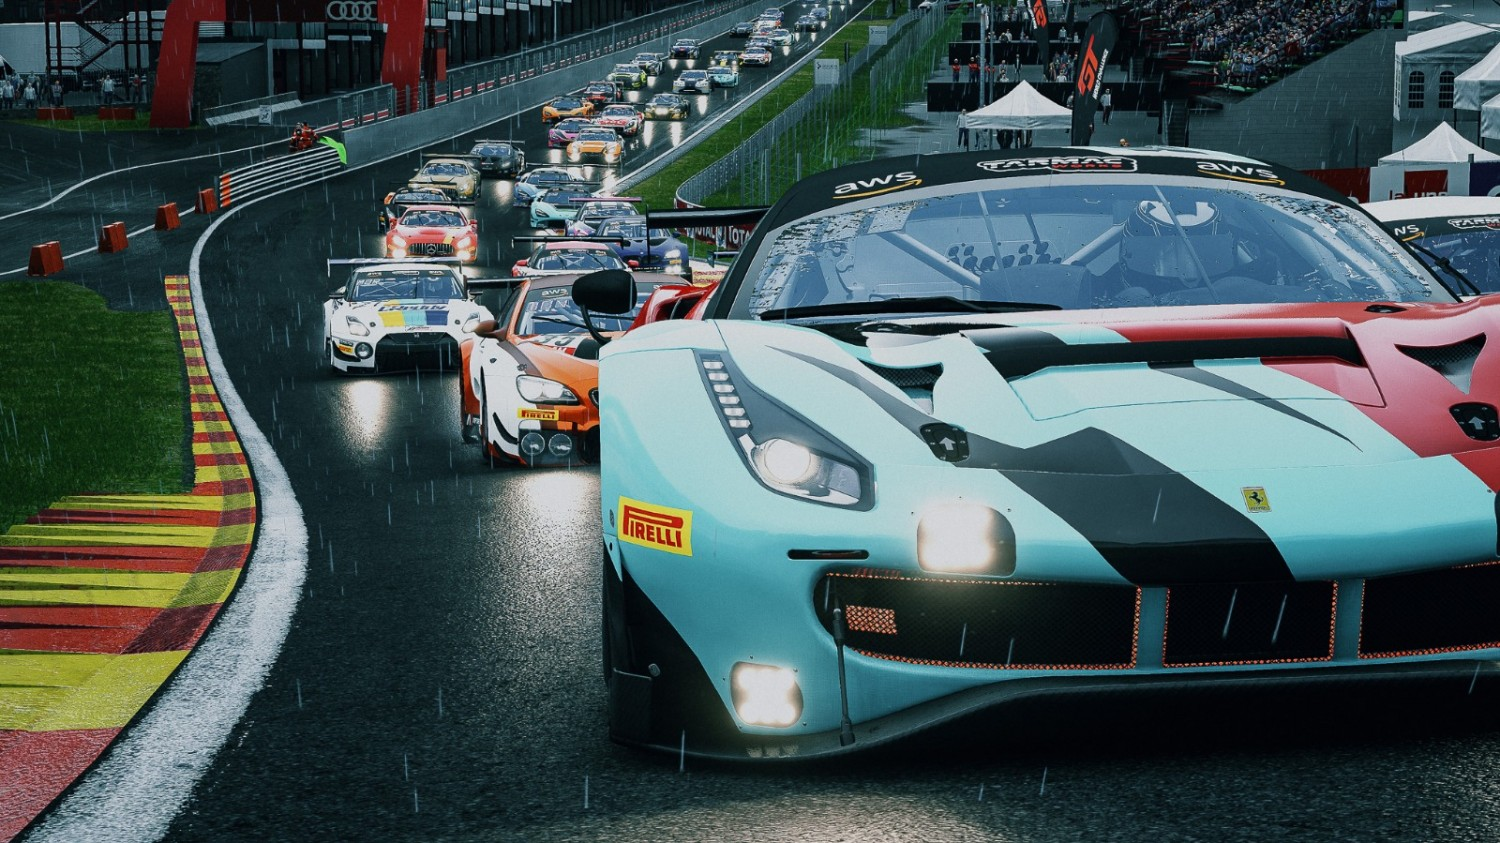 Wins for Borg, Maulana, Lo and Stanley in penultimate TCL GT World Challenge Asia Esports Presented by Tarmac Works round at Spa